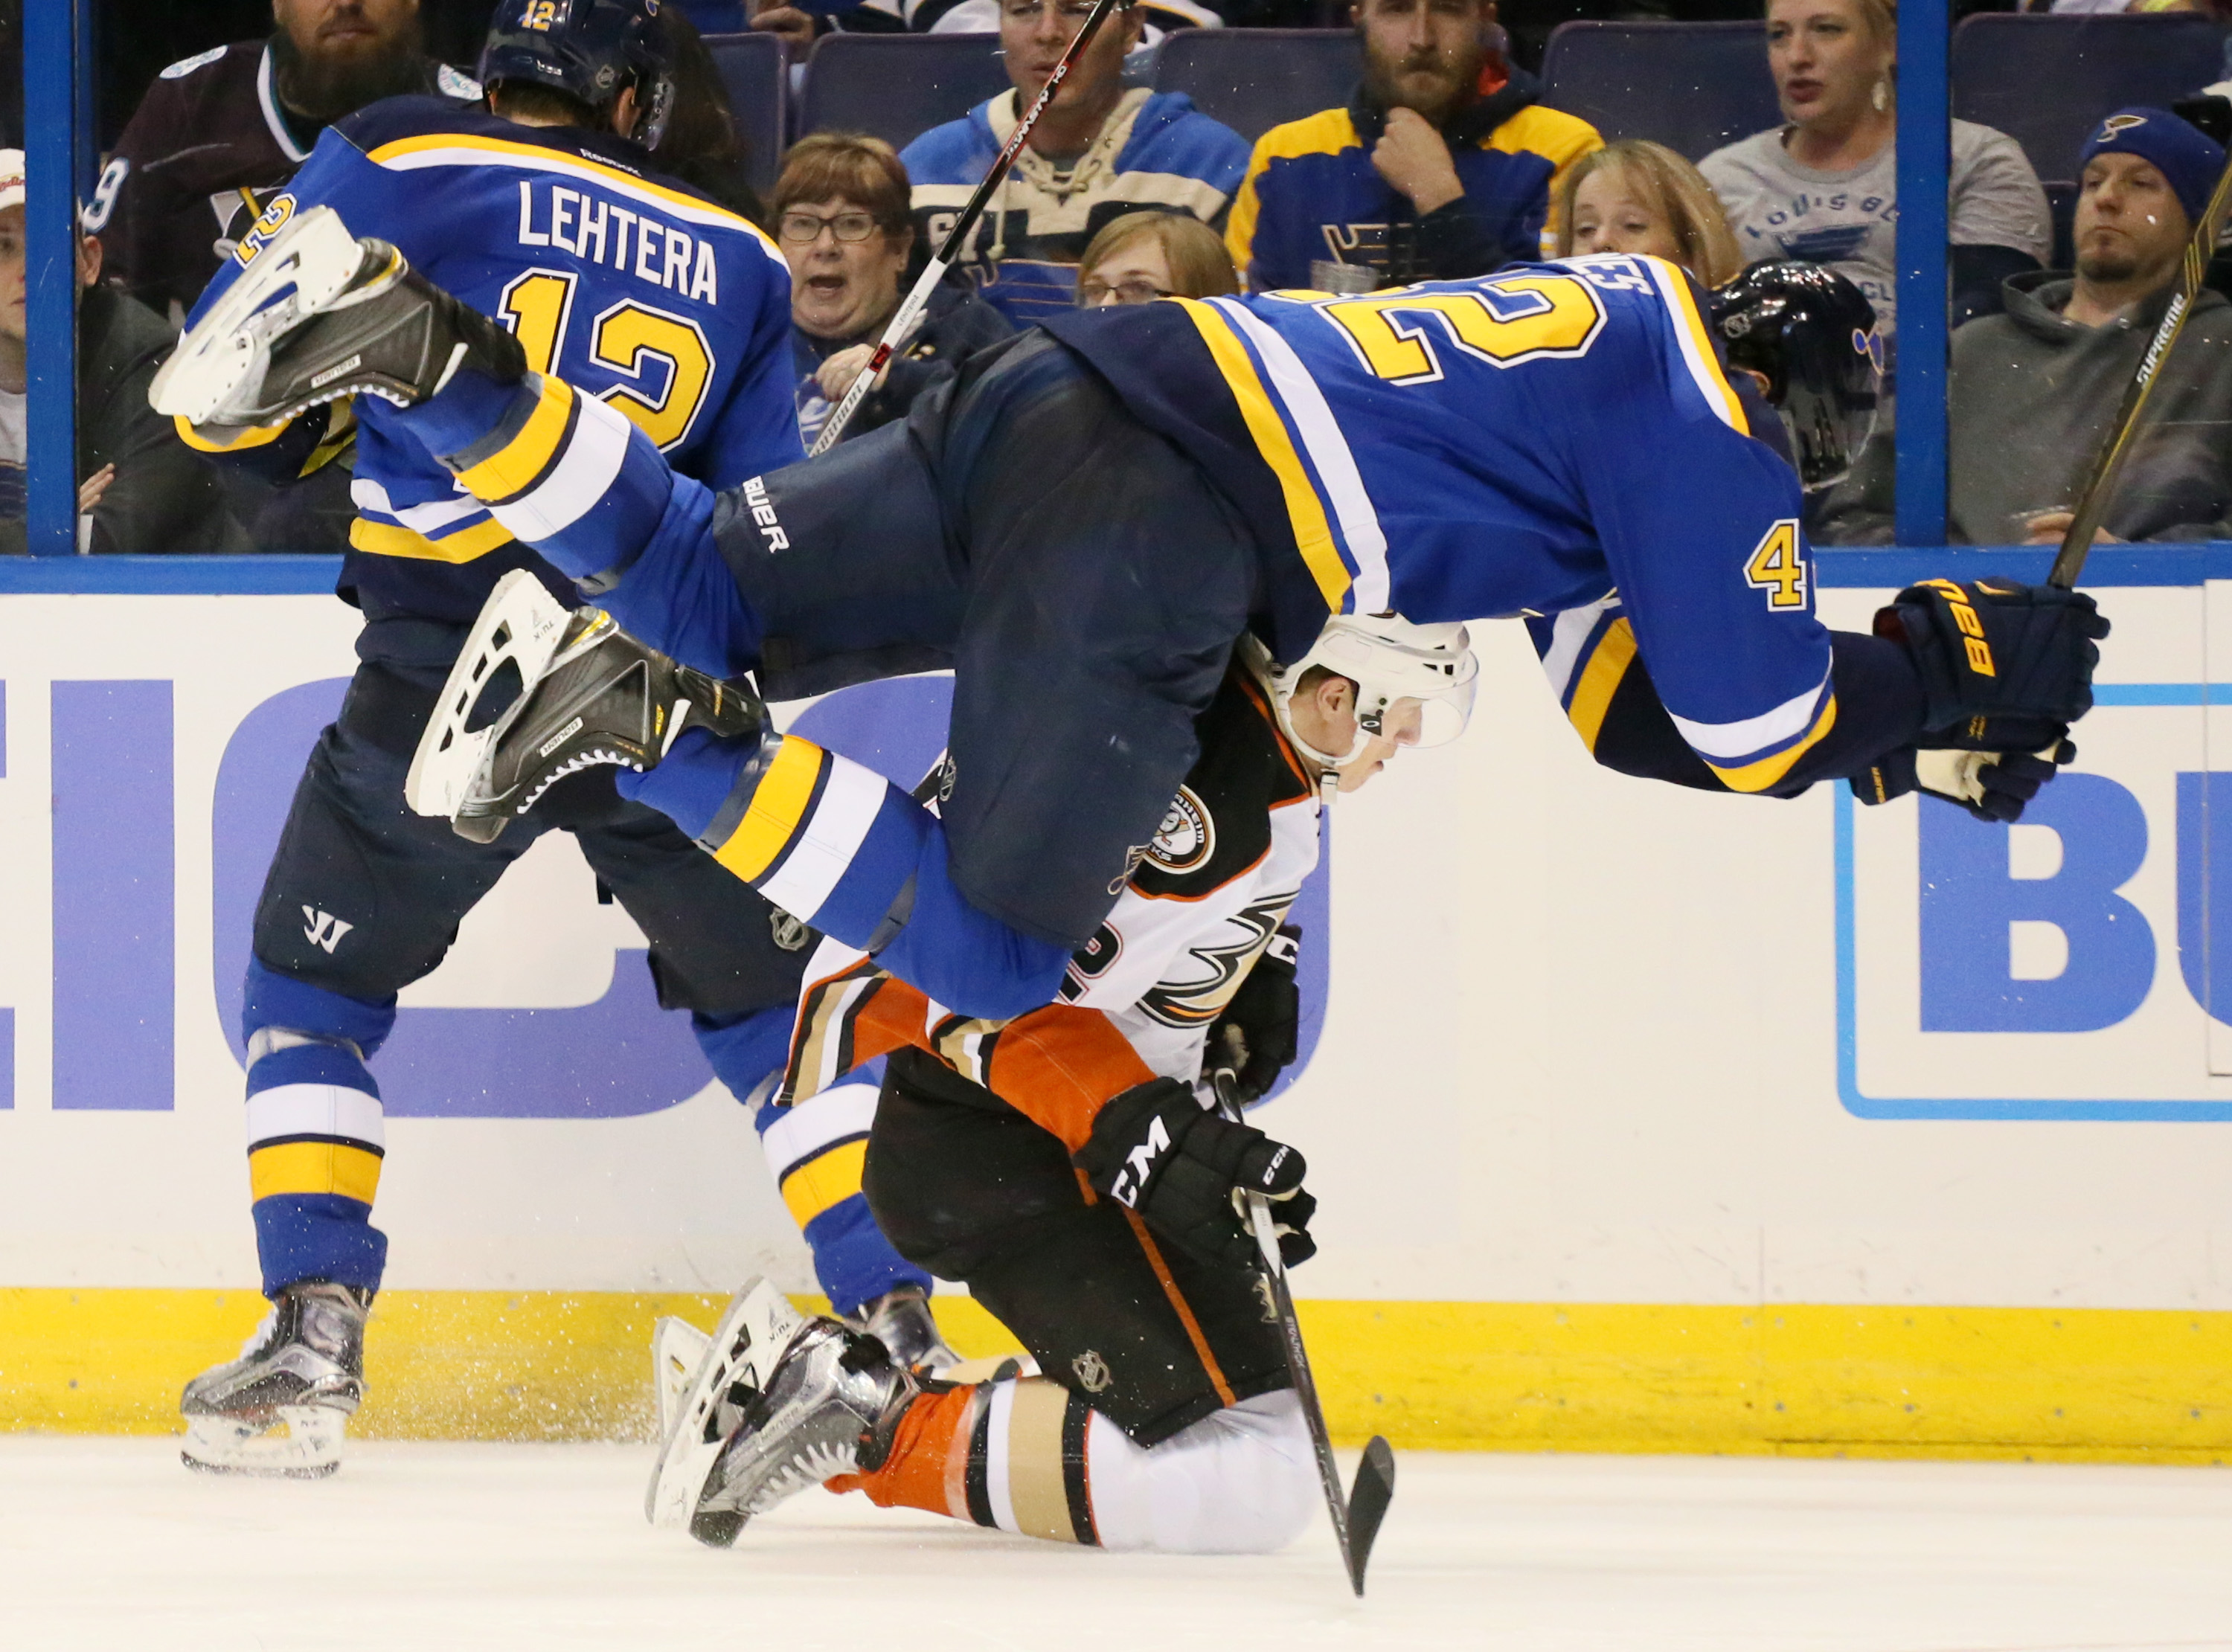 St. Louis Blues center David Backes, top, tumbles over Anaheim Ducks defenseman Josh Manson in the third period of an NHL hockey game Friday, March 11, 2016, in St. Louis. (Chris Lee/St. Louis Post-Dispatch via AP)  EDWARDSVILLE INTELLIGENCER OUT; THE ALT